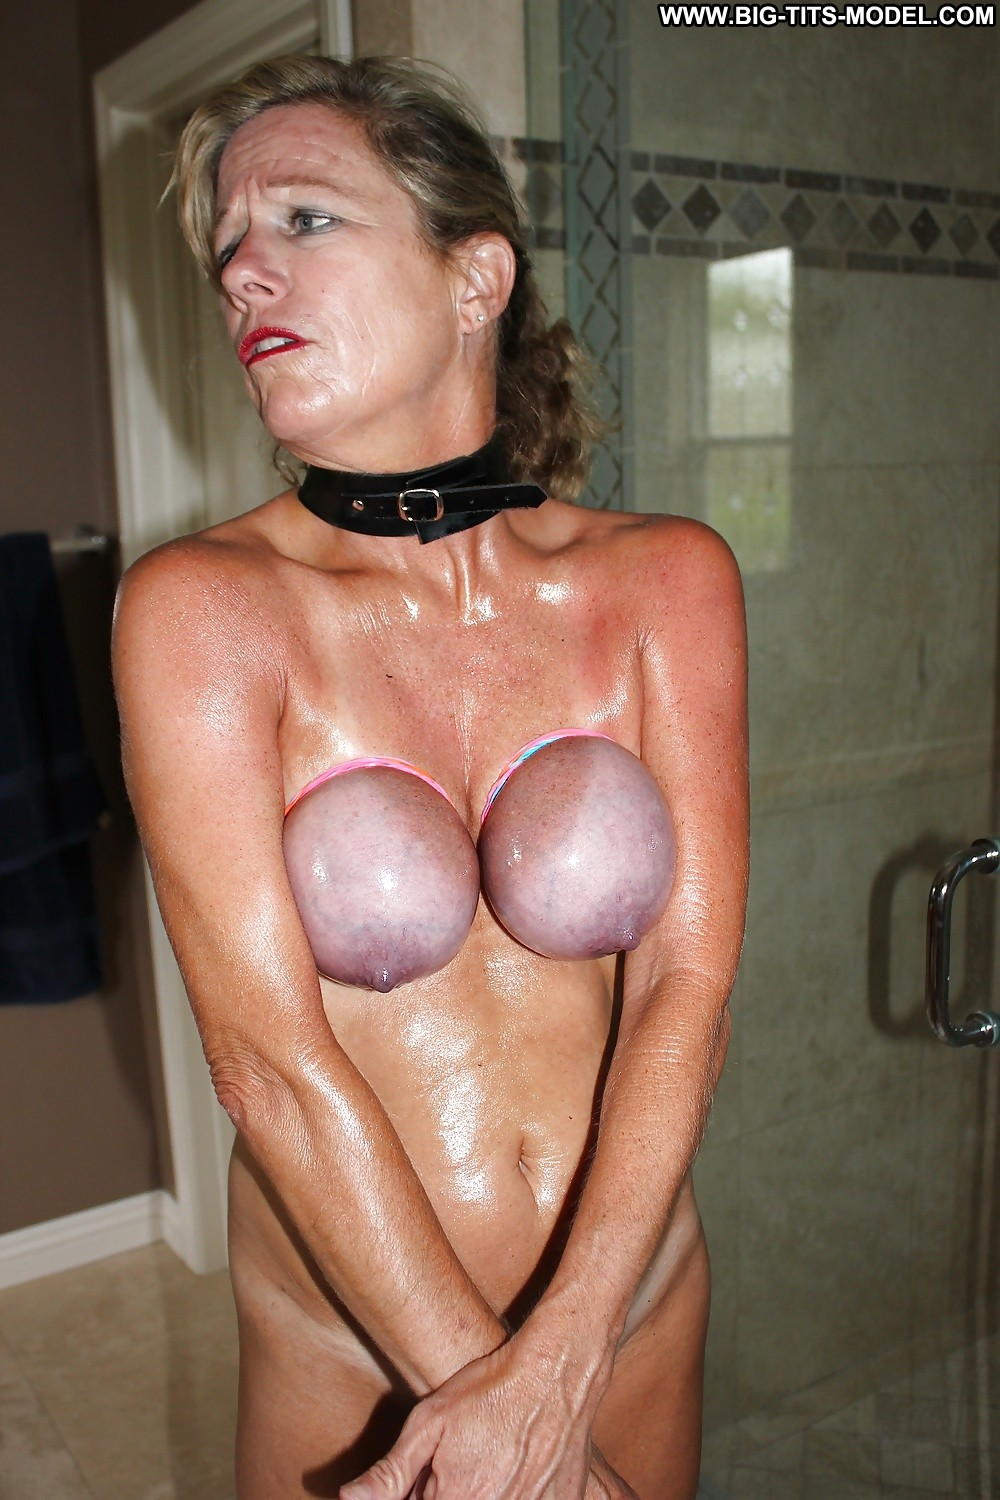 Milf slut pictures